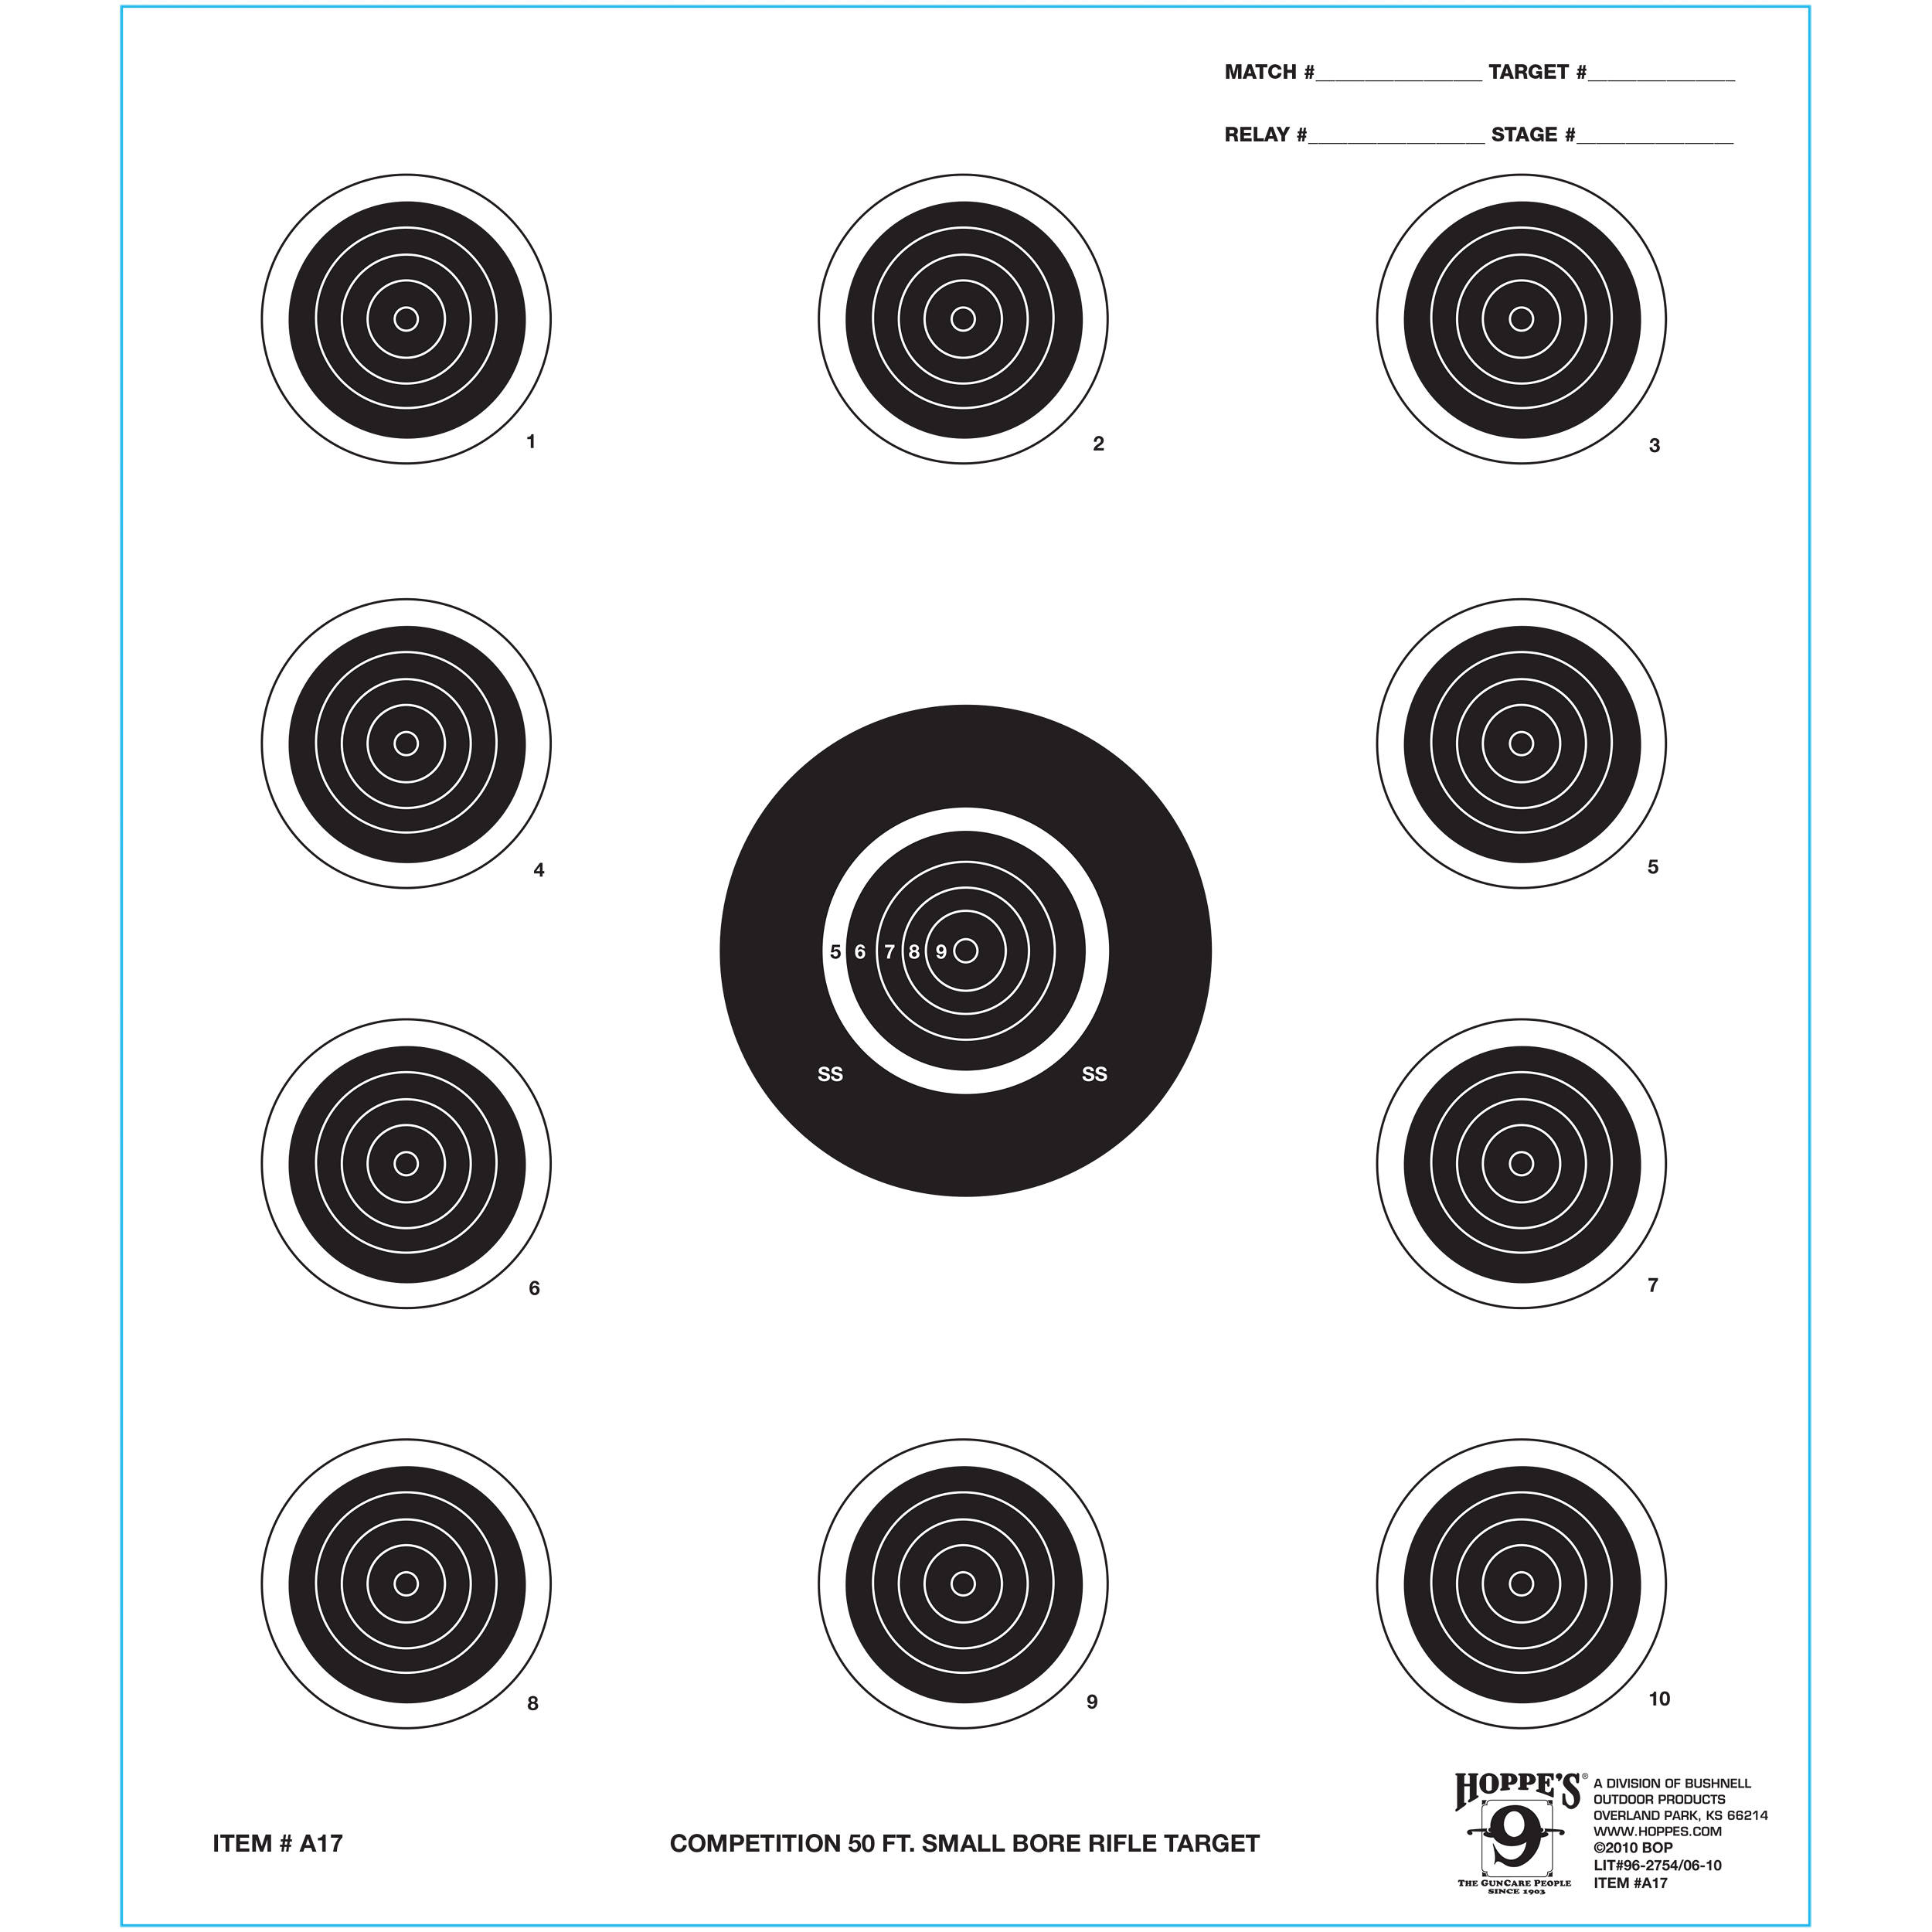 Hoppes 7x9 Five Bull Tag Competition Rifle Targets A5